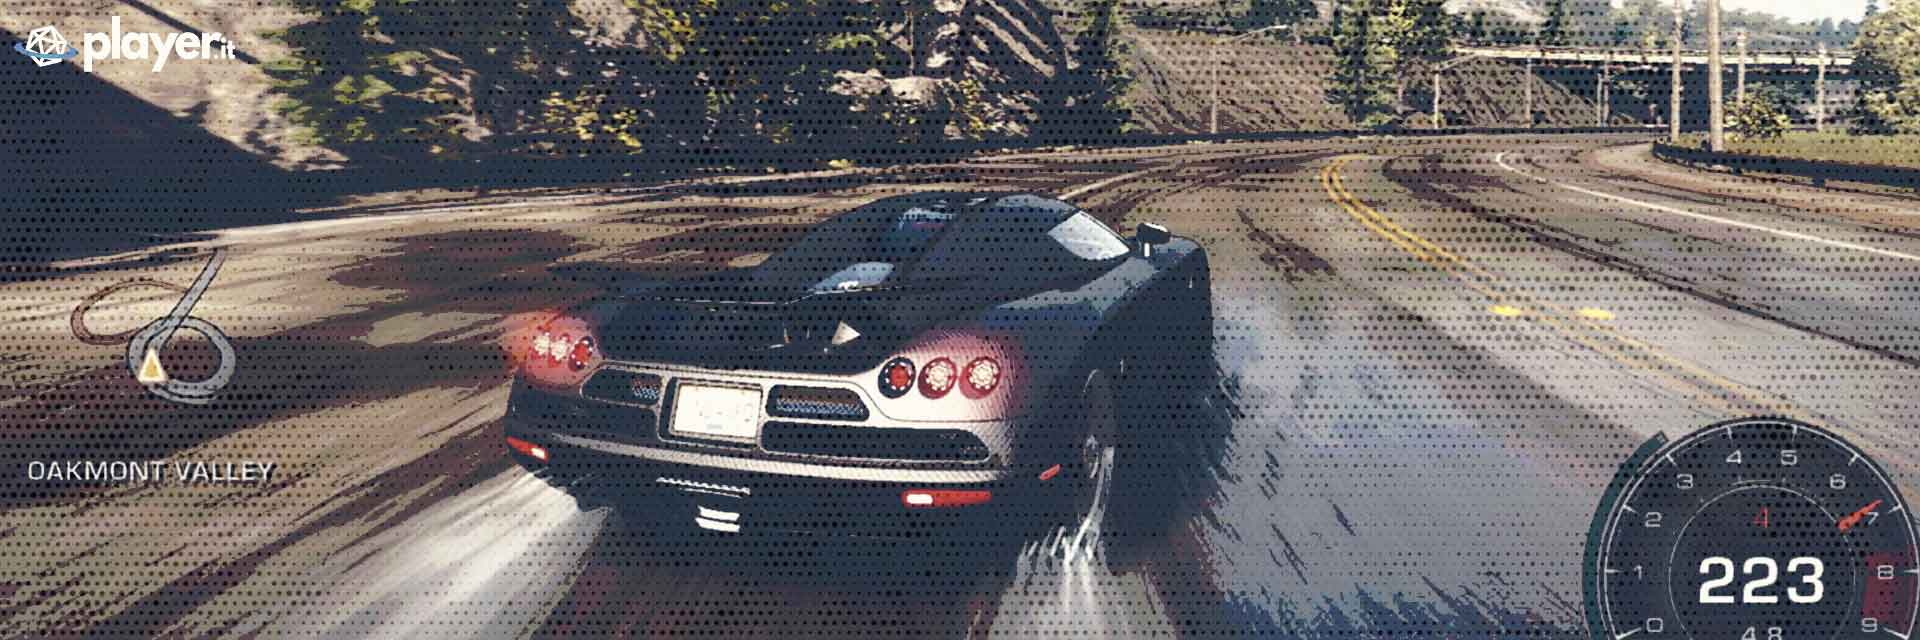 immagine in evidenza del gioco Need For Speed Hot Pursuit Remastered